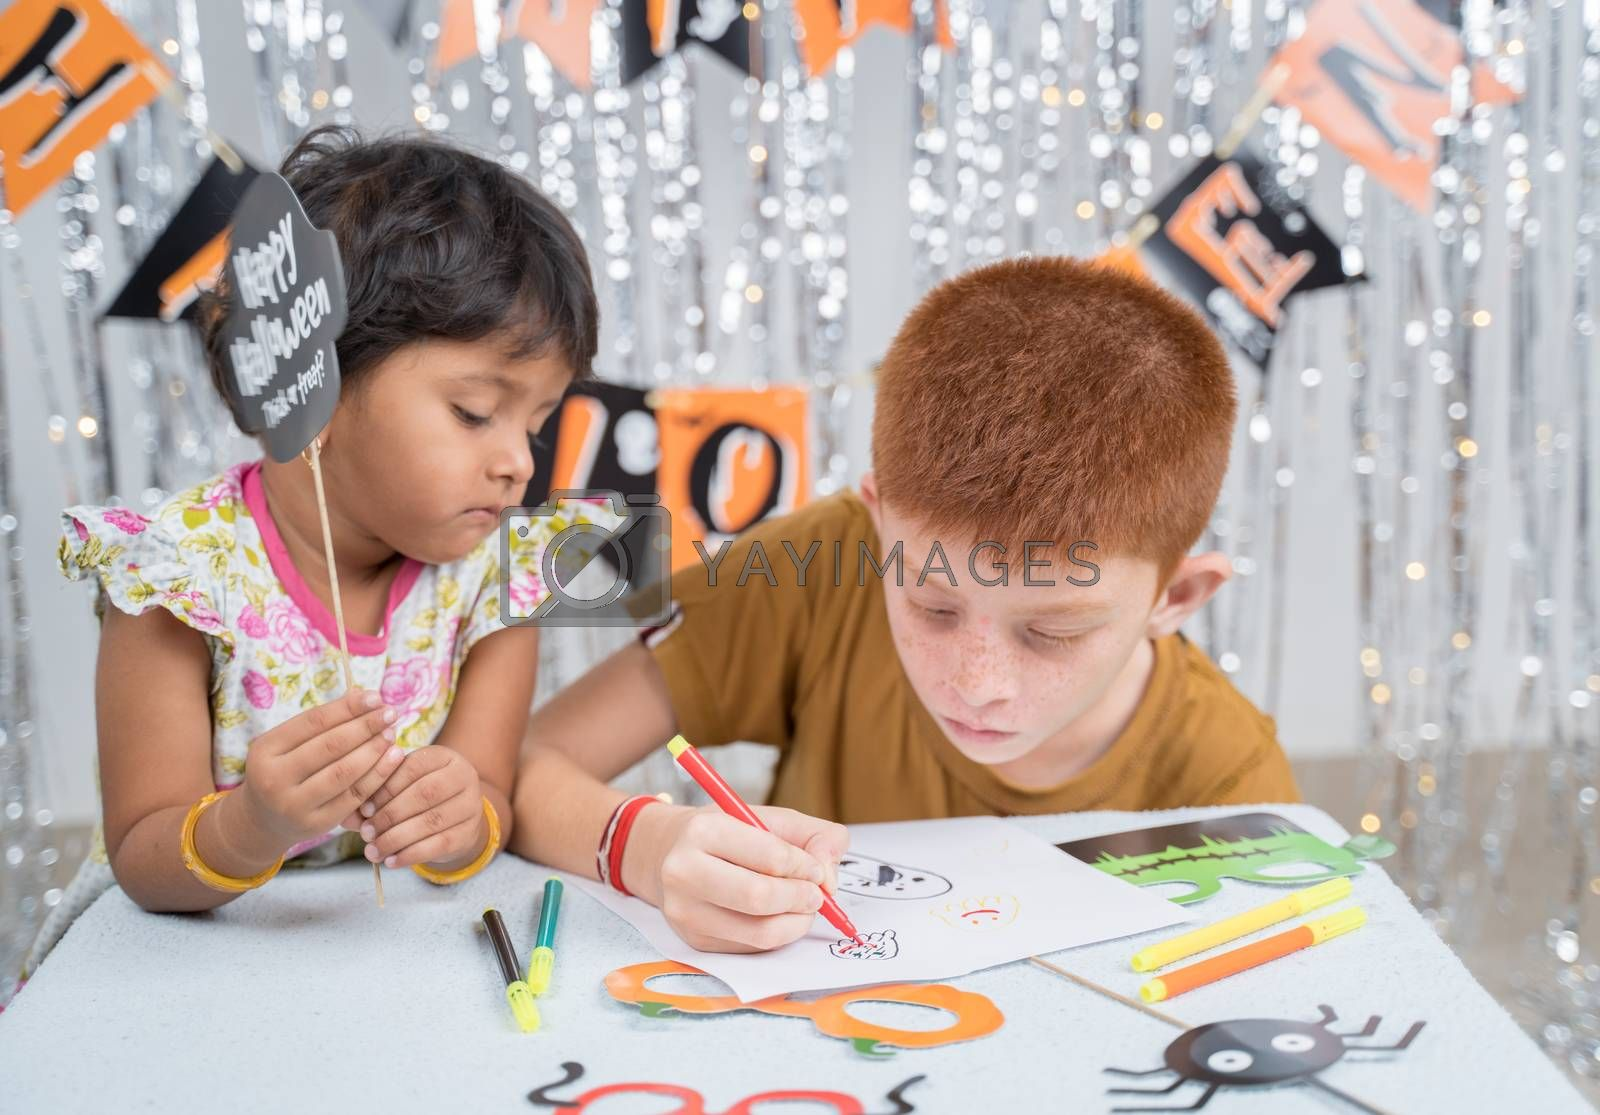 Selective focus on drawing hands, Kids busy in making or drawing halloween props - concept of halloween, holiday and childhood festival celebration and preparation